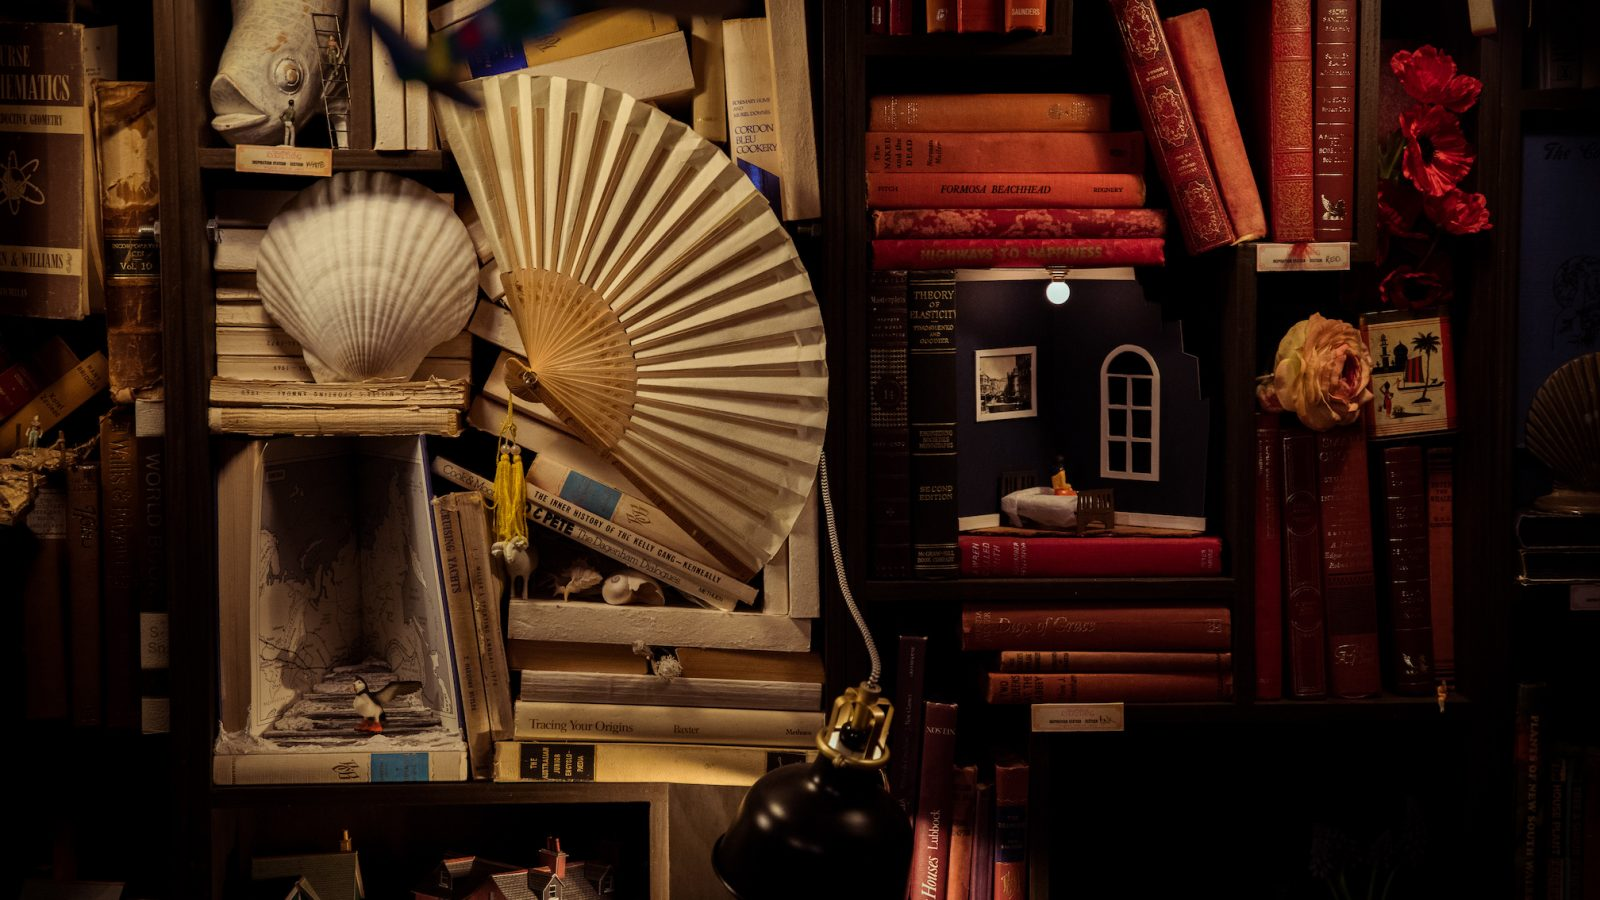 Close up of a wall covered in various items such as books, paper fans, sheels and ornaments